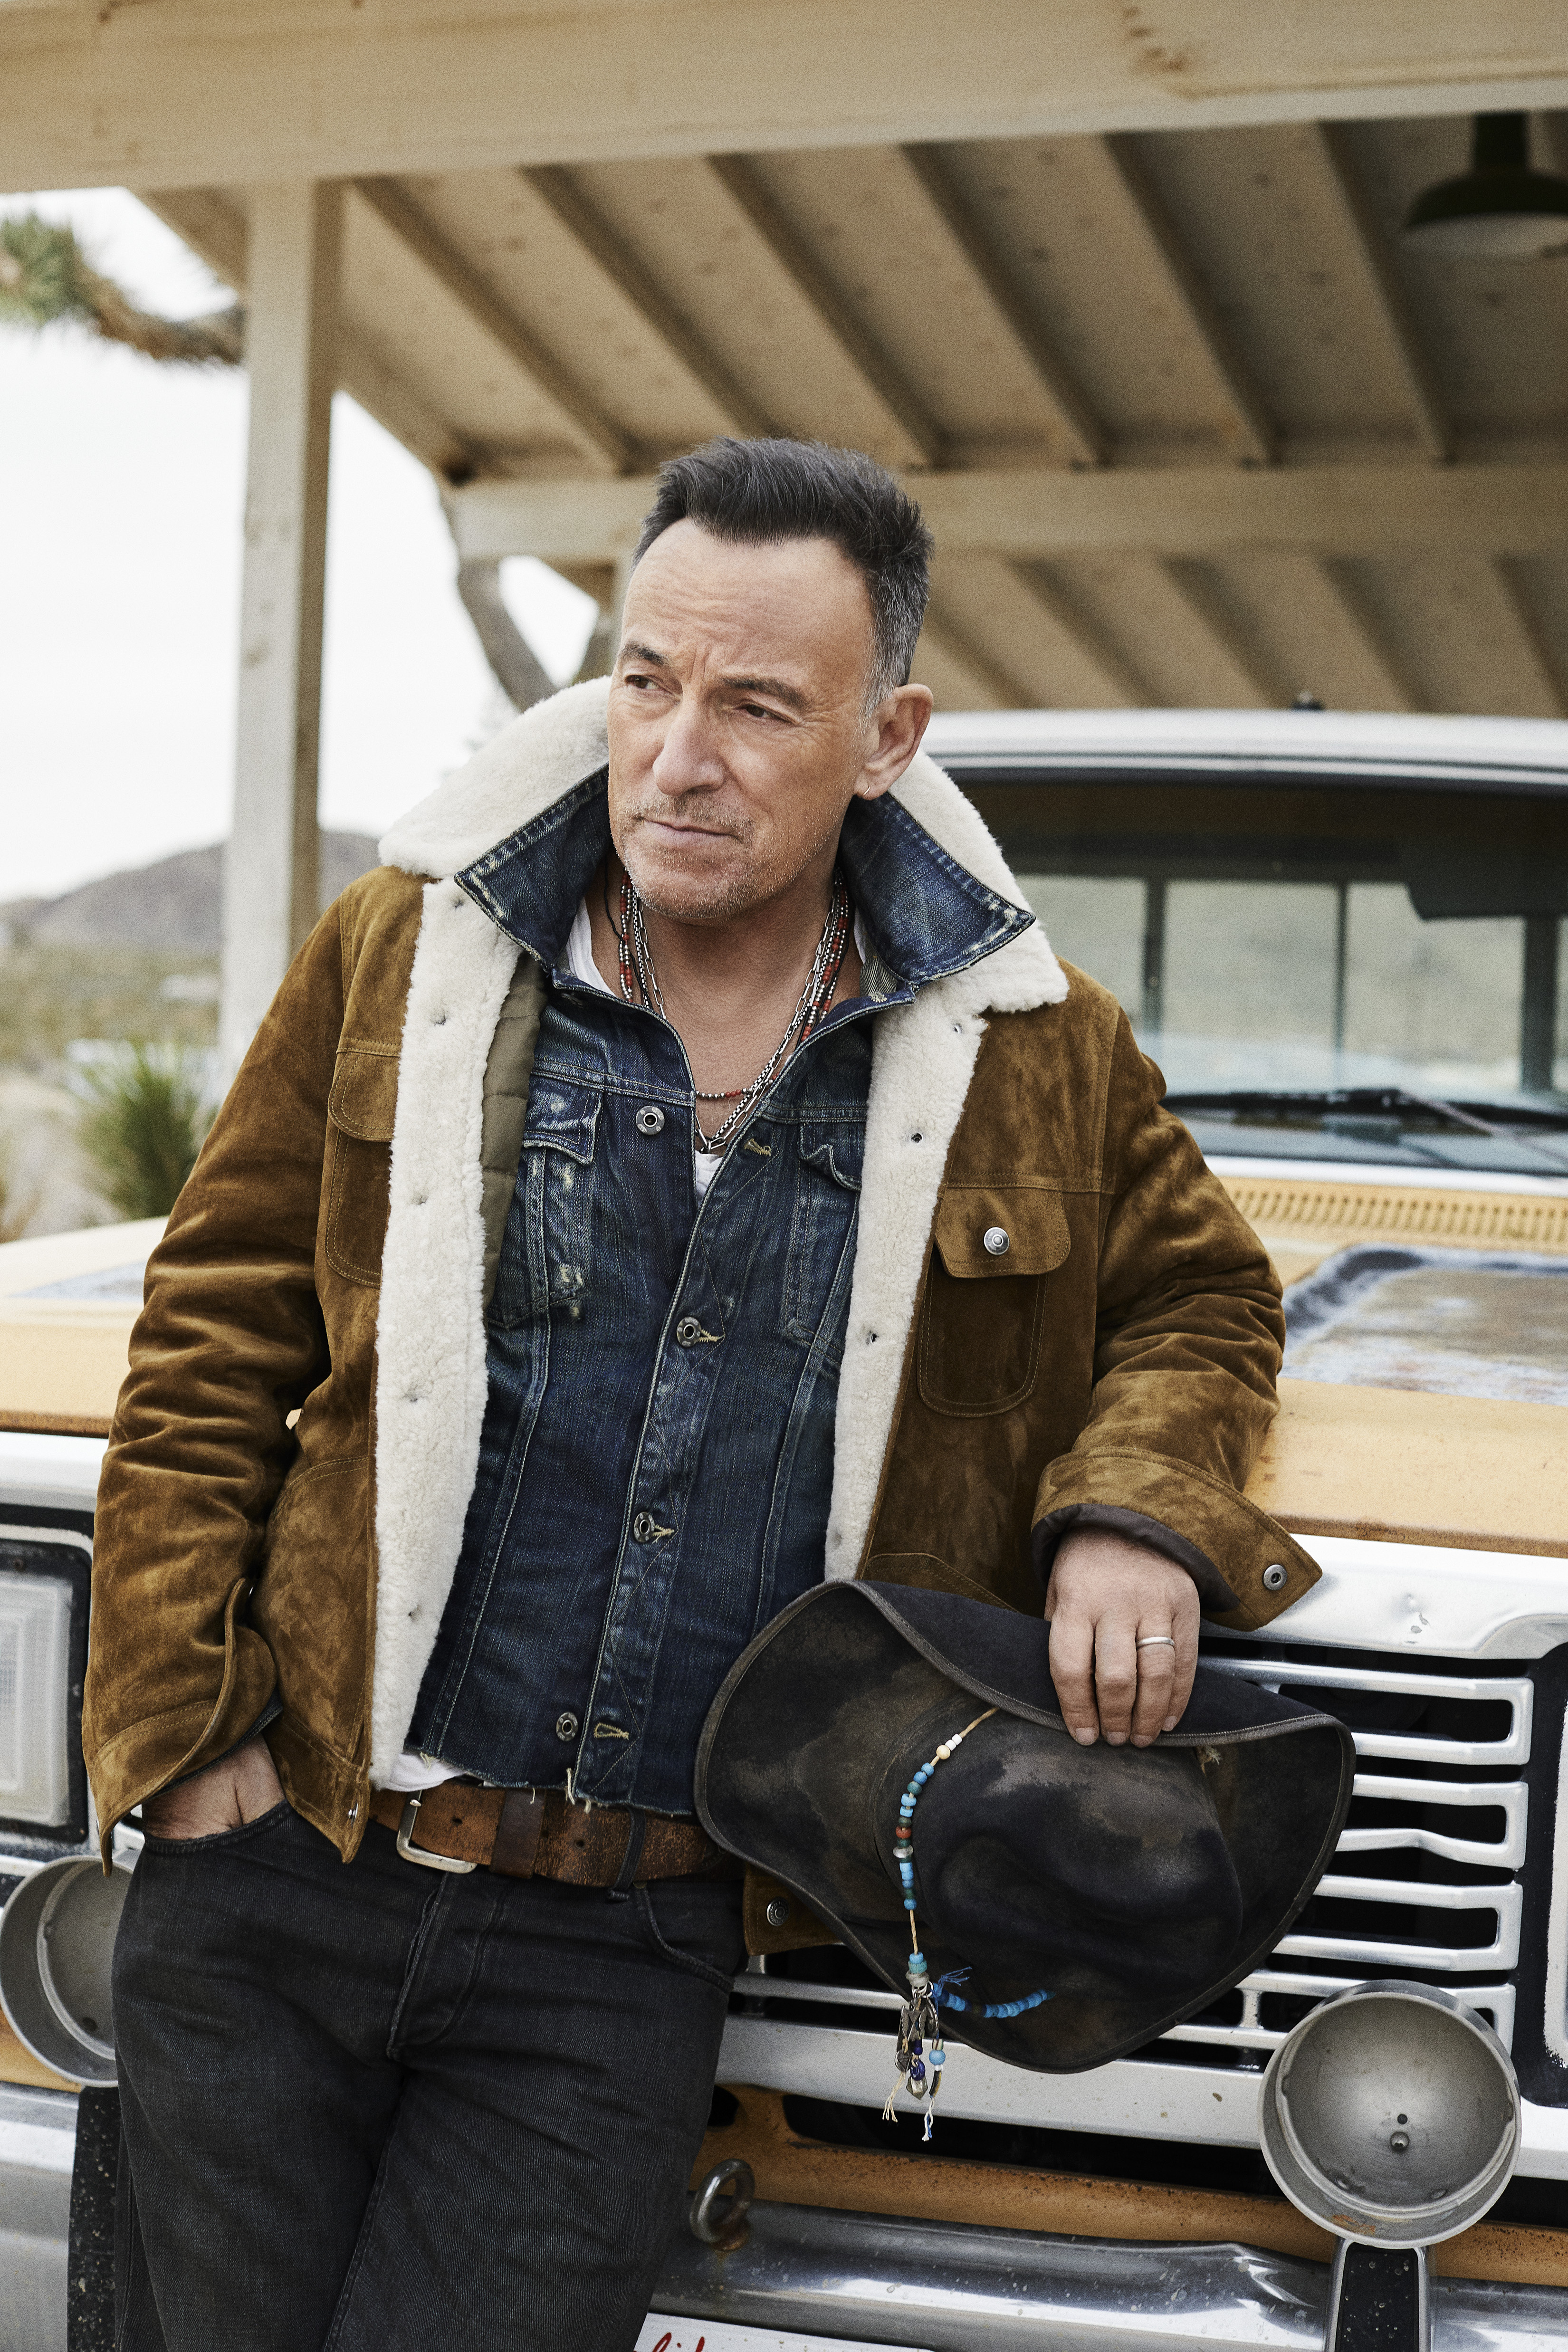 Bruce Springsteen and Madonna are subcultures now - The